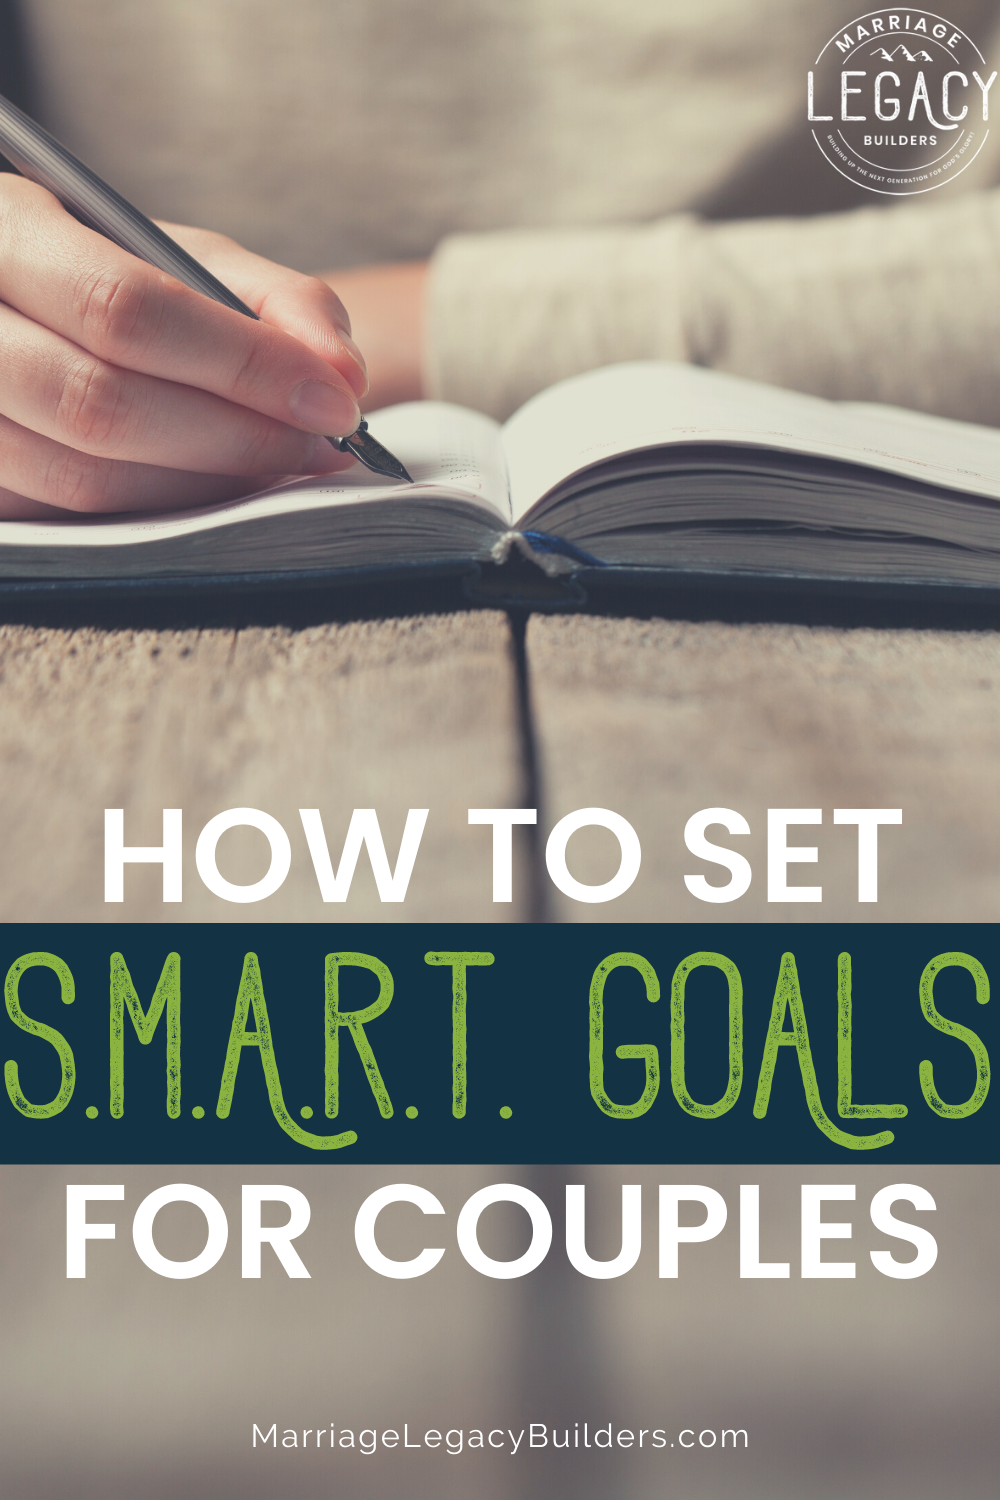 How to Set S.M.A.R.T. Goals for Couples